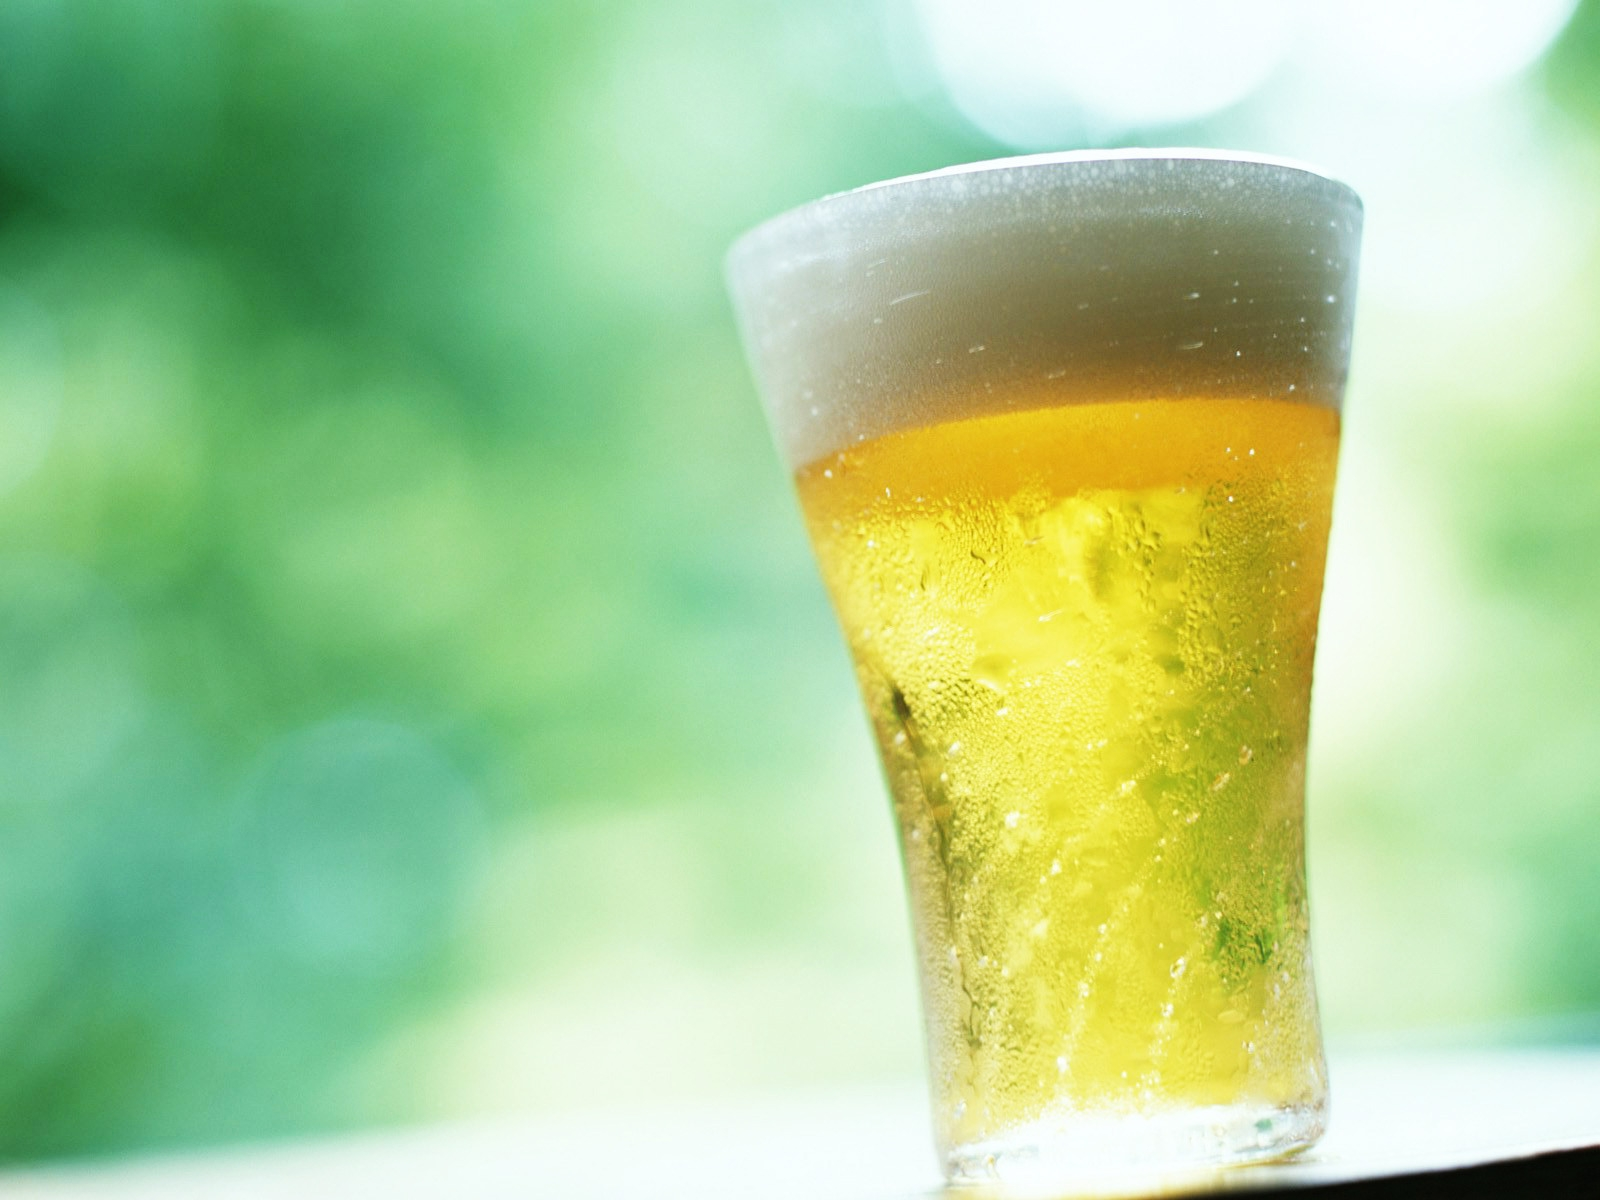 Cold Glass of Beer hd wallpaper for 1600 x 1200 resolution